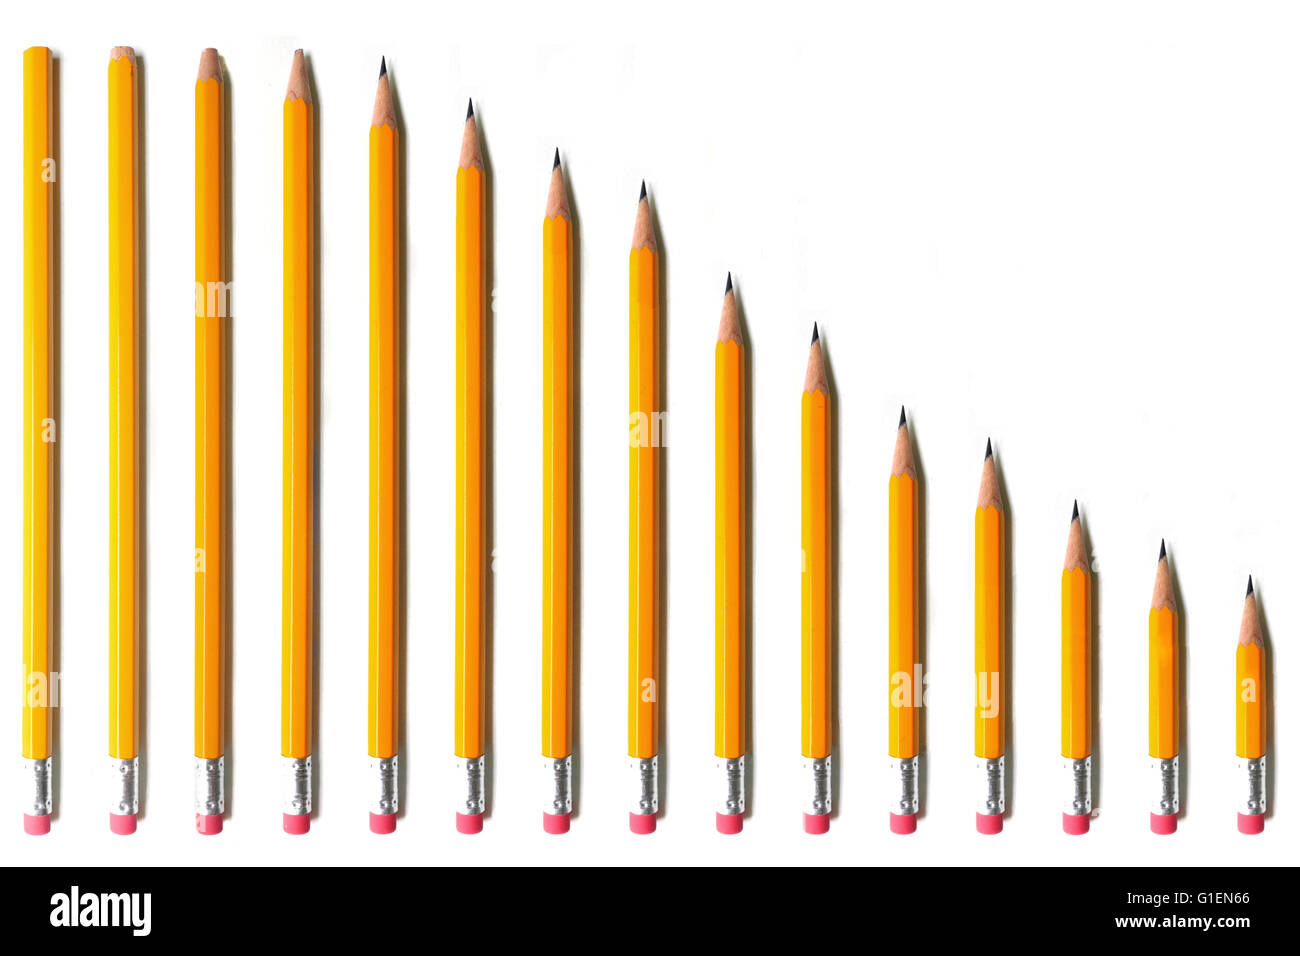 A line of pencils going from tall and unsharpened to short photographed against a white background. - Stock Image